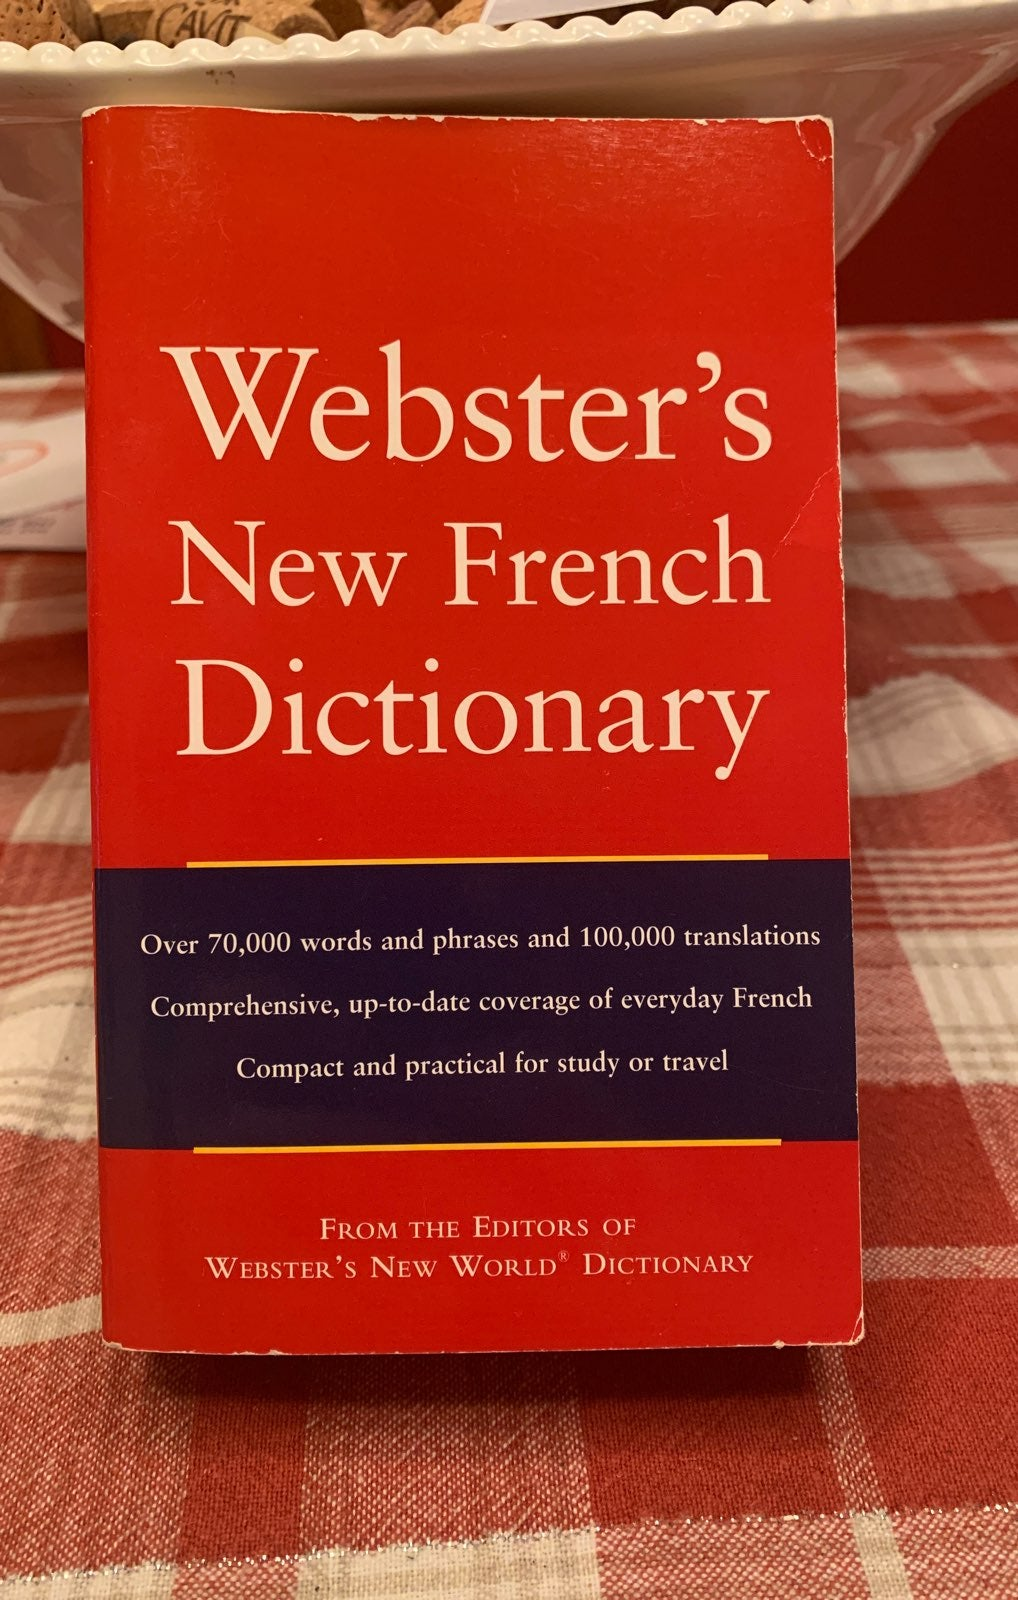 WEBSTER'S NEW FRENCH DICTIONARY LEARN FR